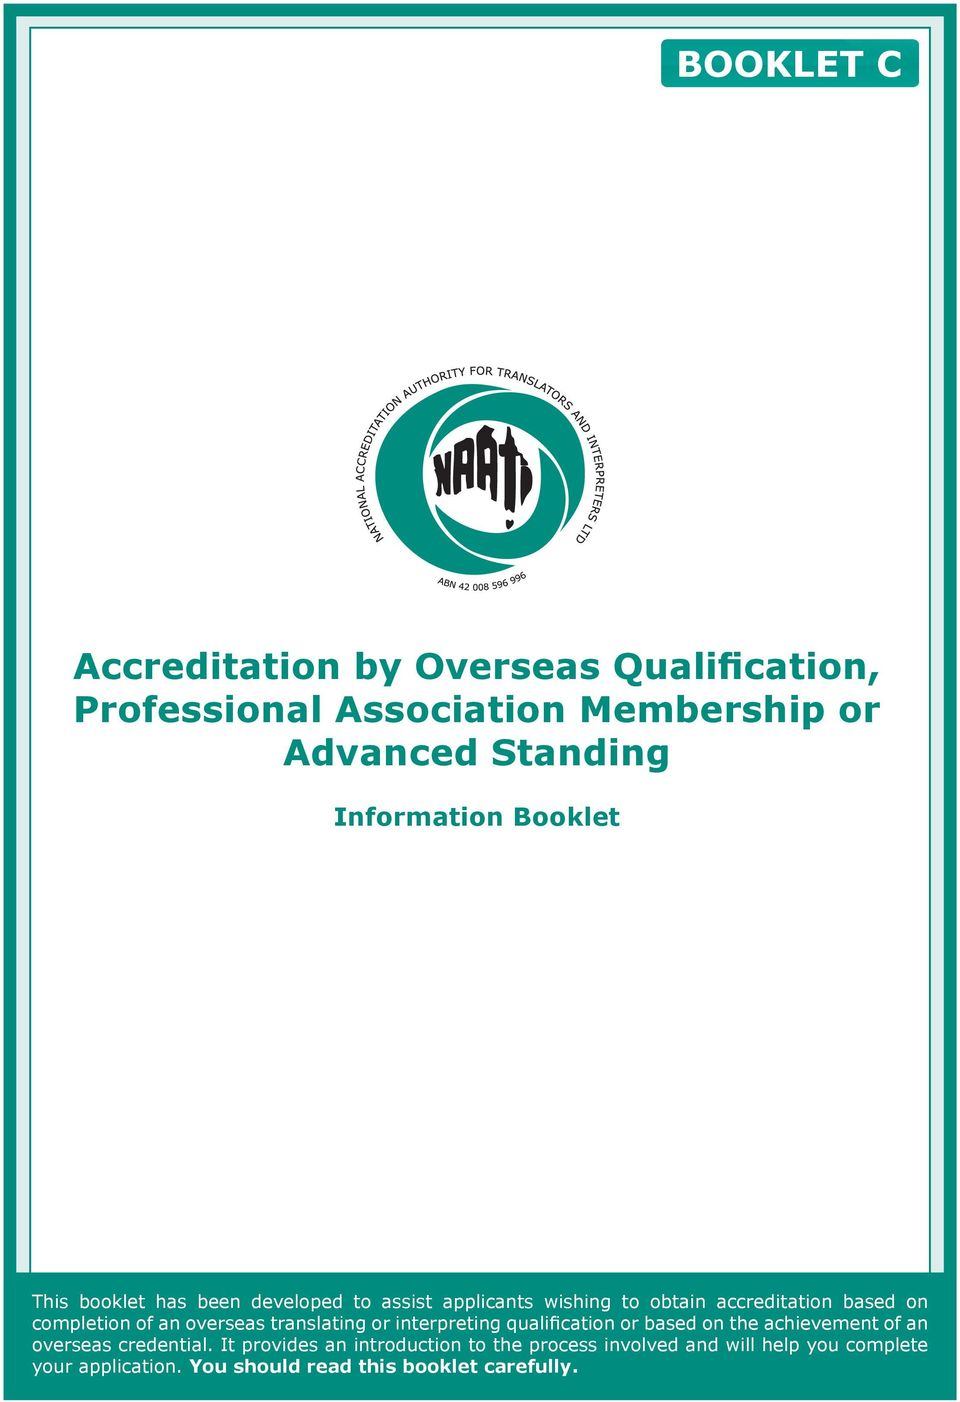 overseas translating or interpreting qualification or based on the achievement of an overseas credential.